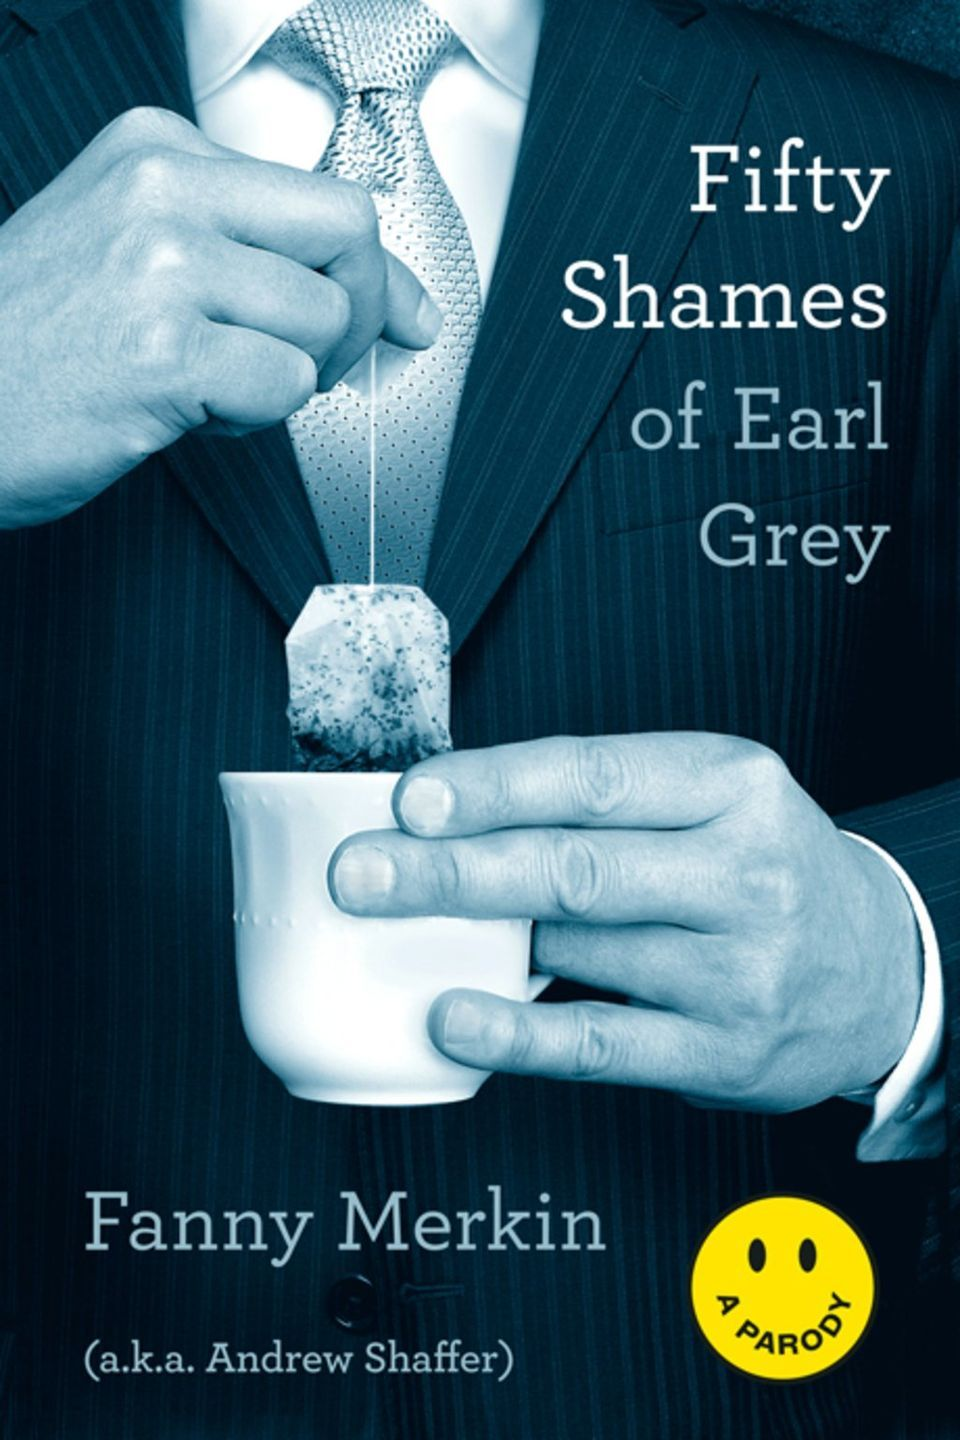 10-things-you-didnt-know-about-fifty-shades-of-grey 10 Things You Didn't Know About Fifty Shades of Grey 10 Things You Didn't Know About Fifty Shades of Grey fiftyshamescover460